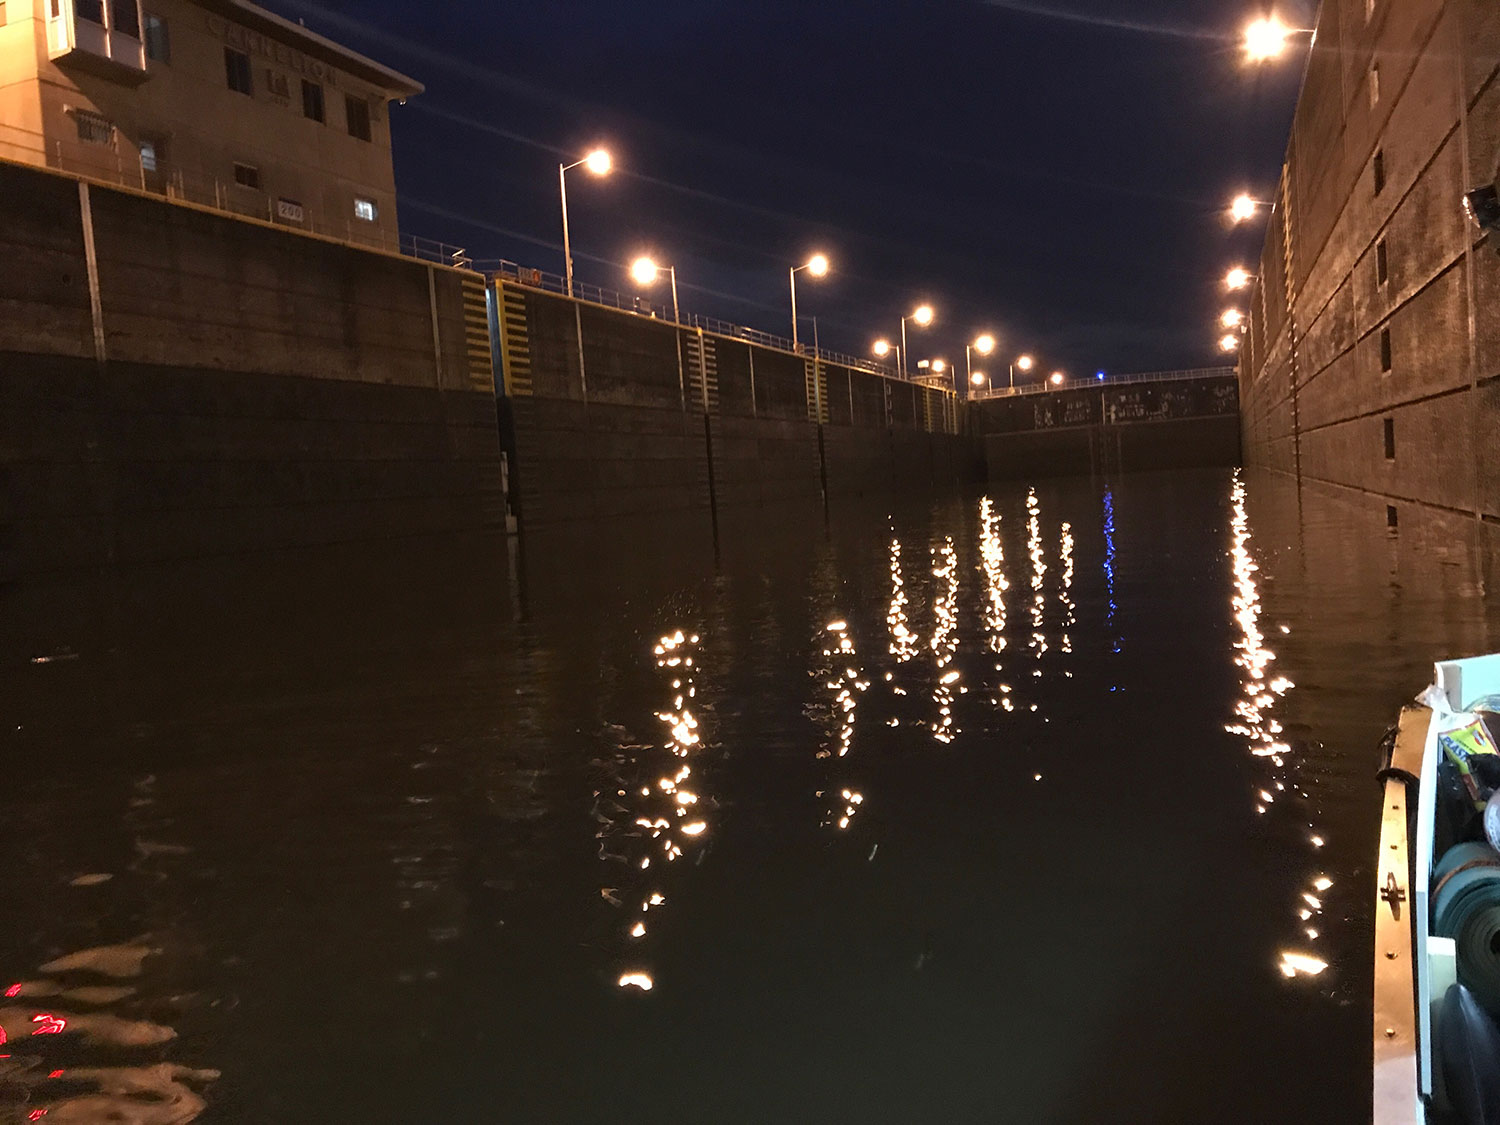 Marc Phelps's view of cannelton locks on the Ohio River